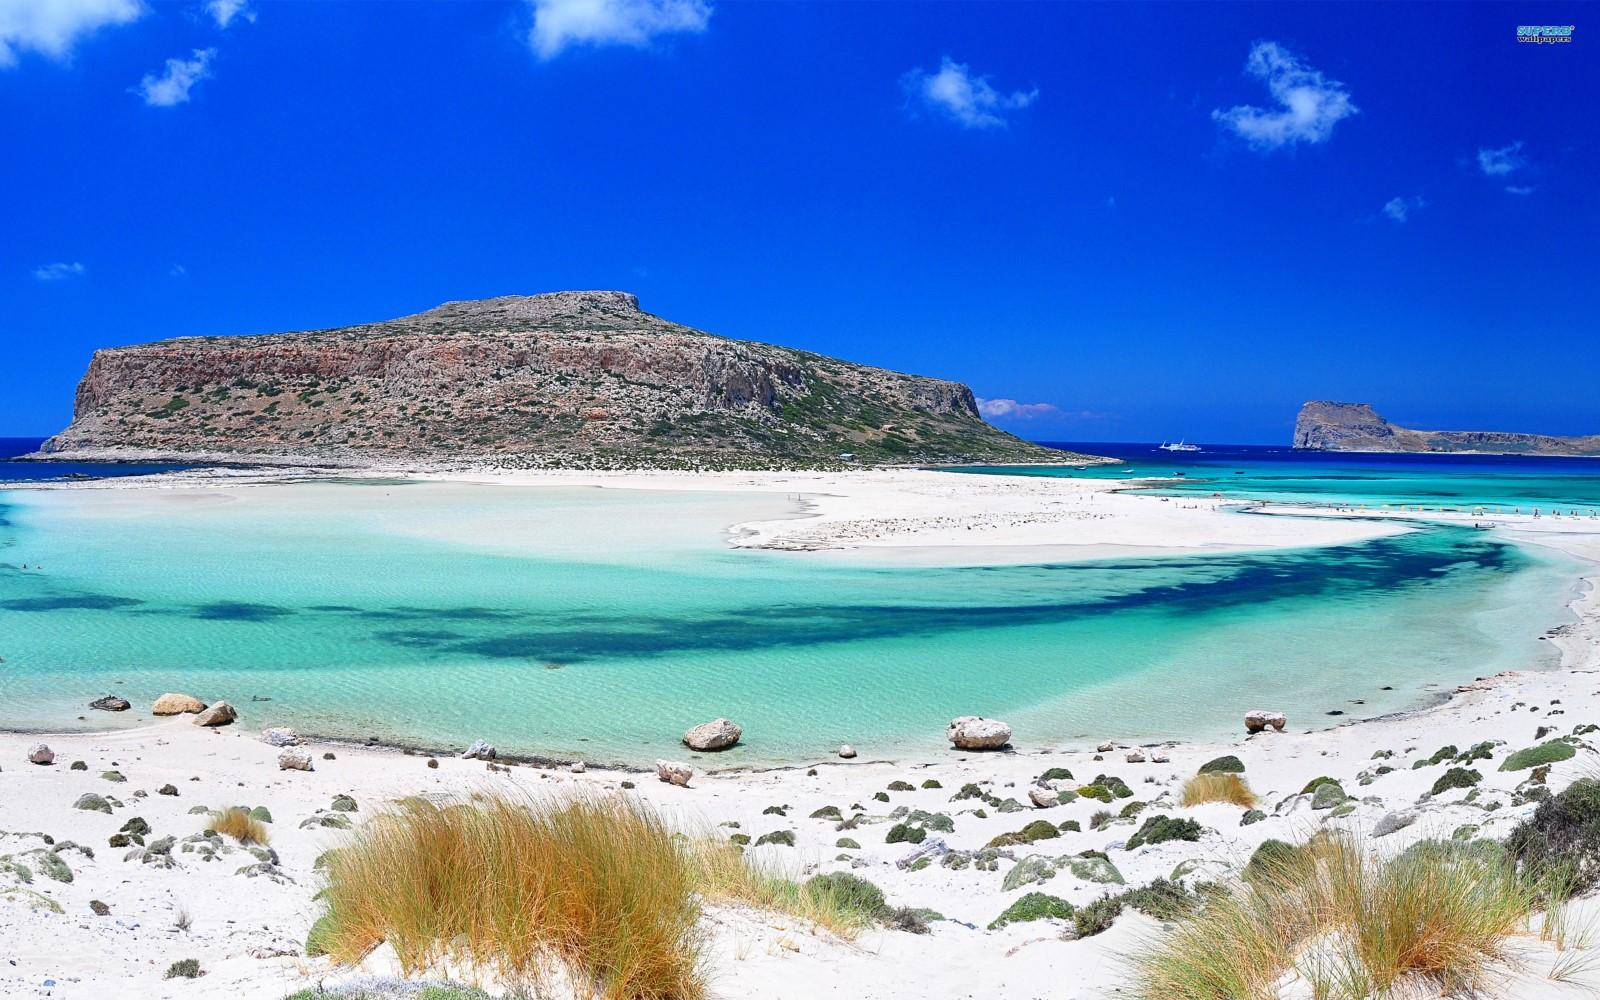 Balos lagoon - Travel Guide for Island Crete, Greece